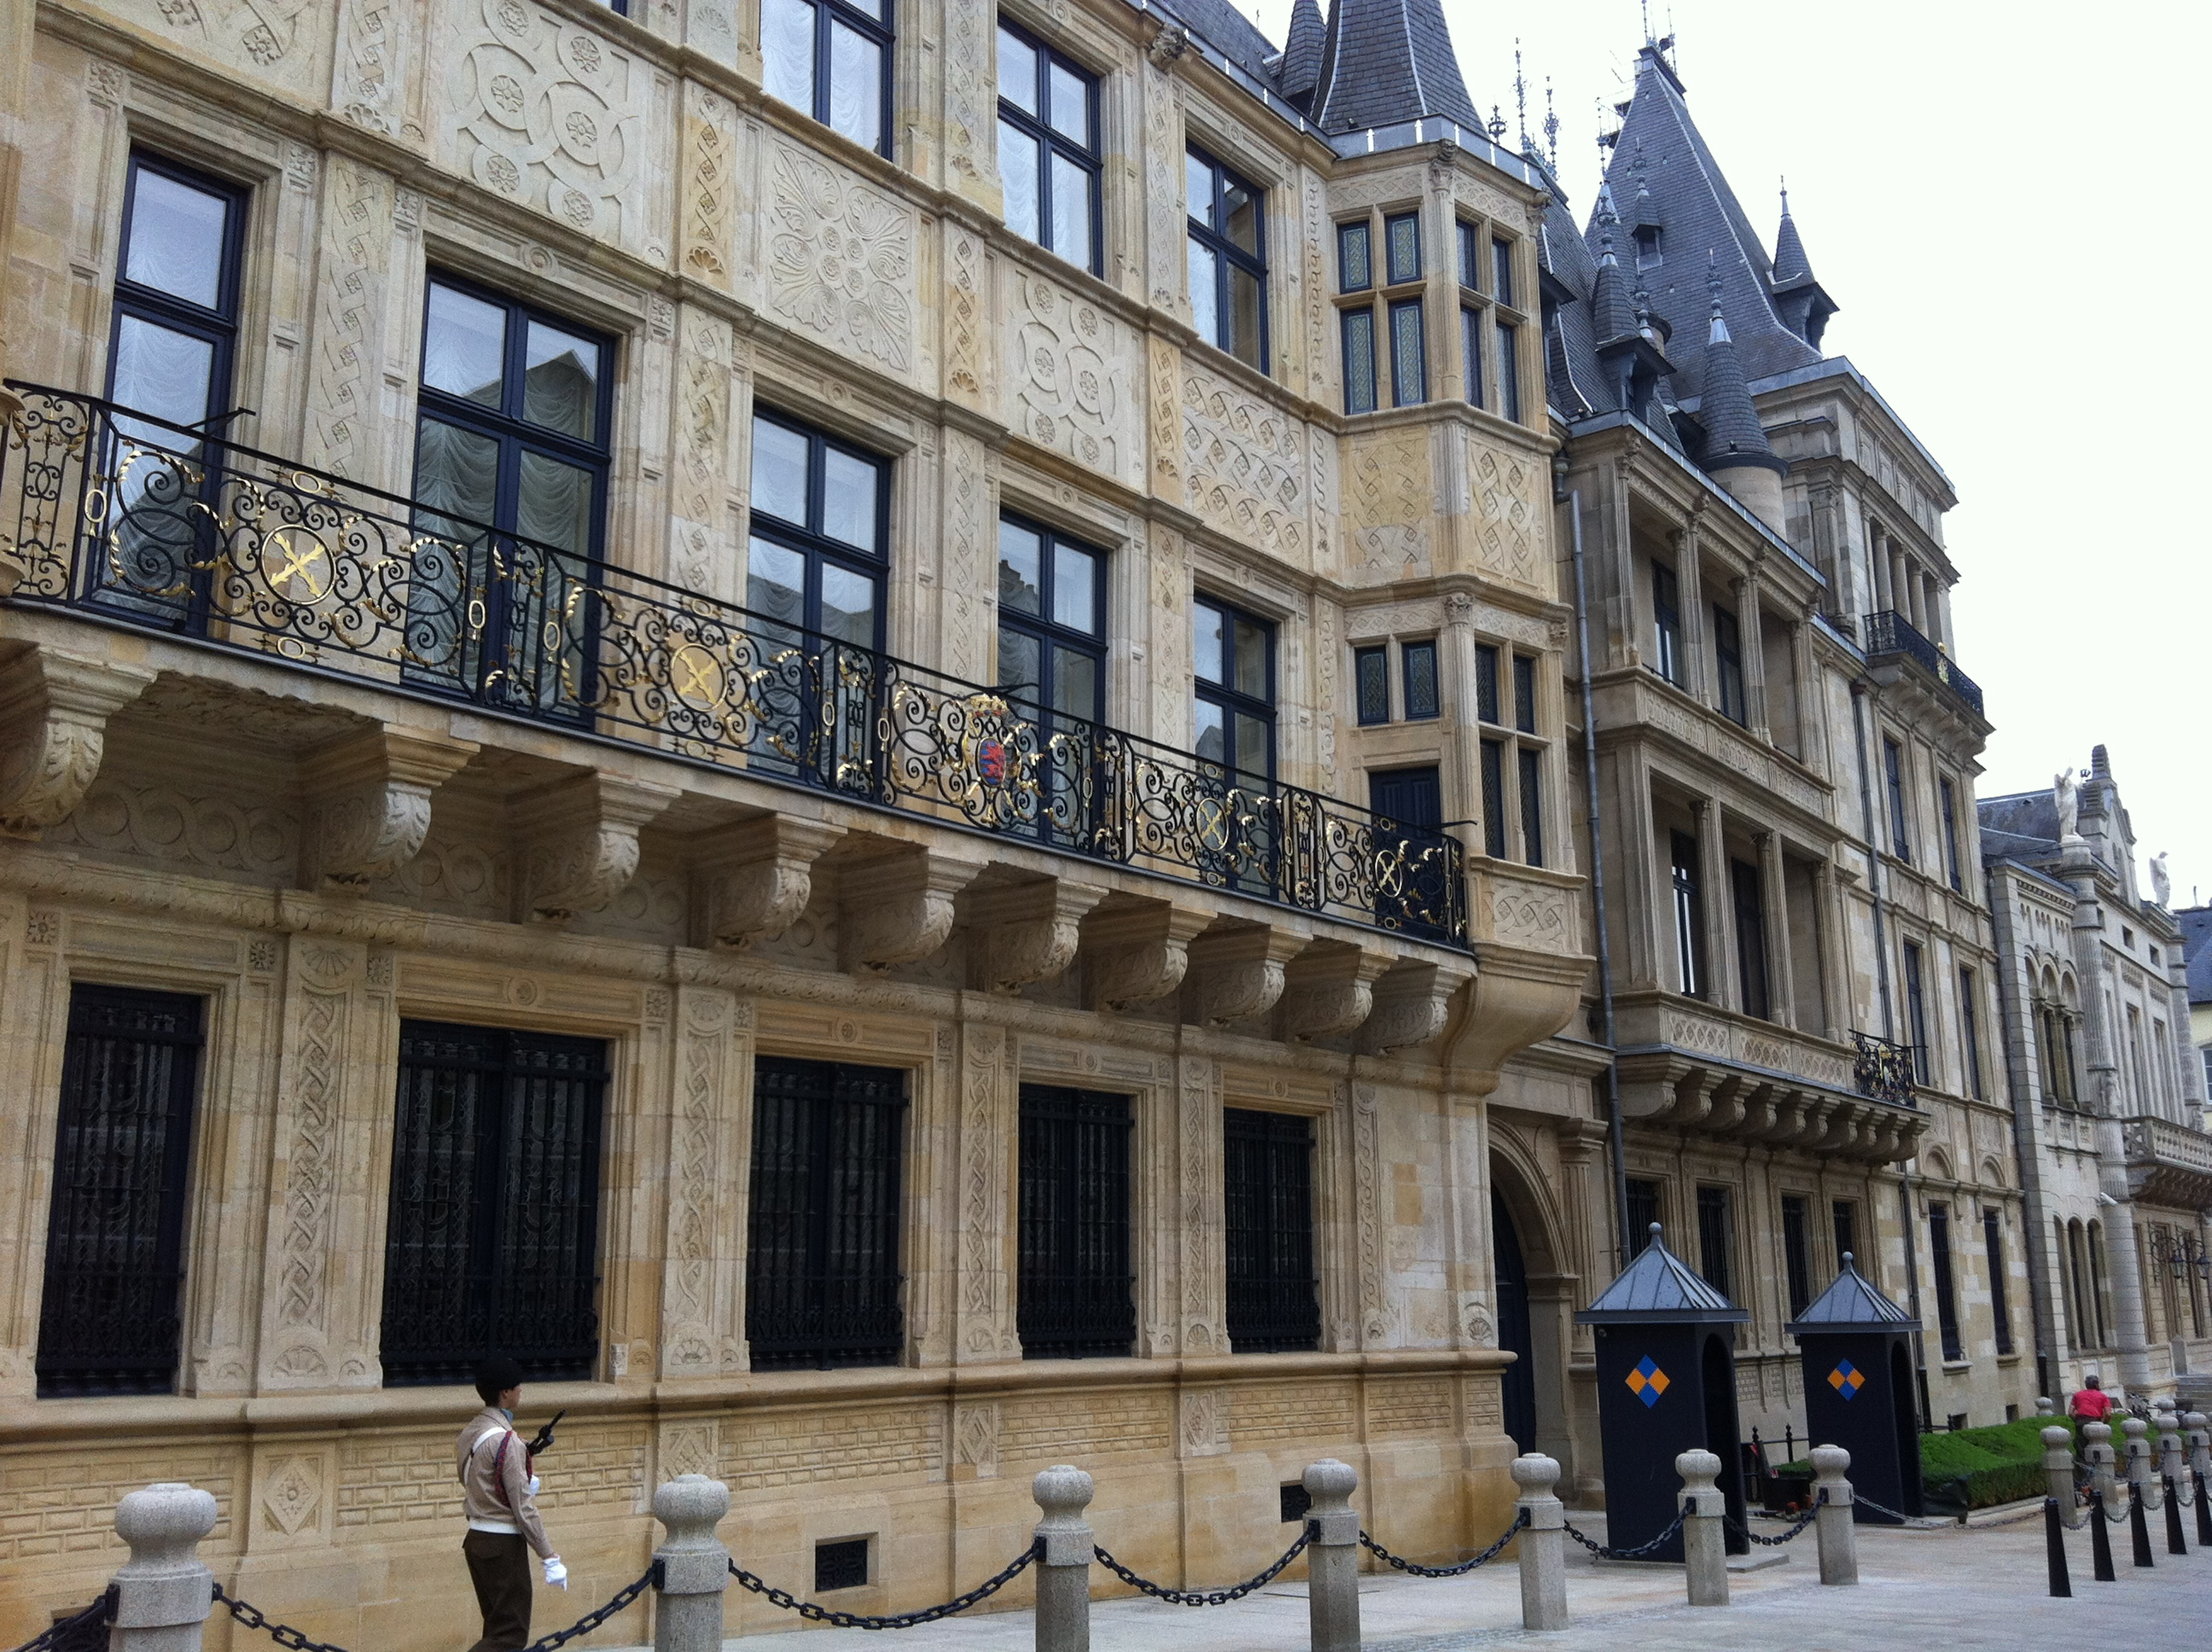 Grand Ducal Palace, Luxembourg